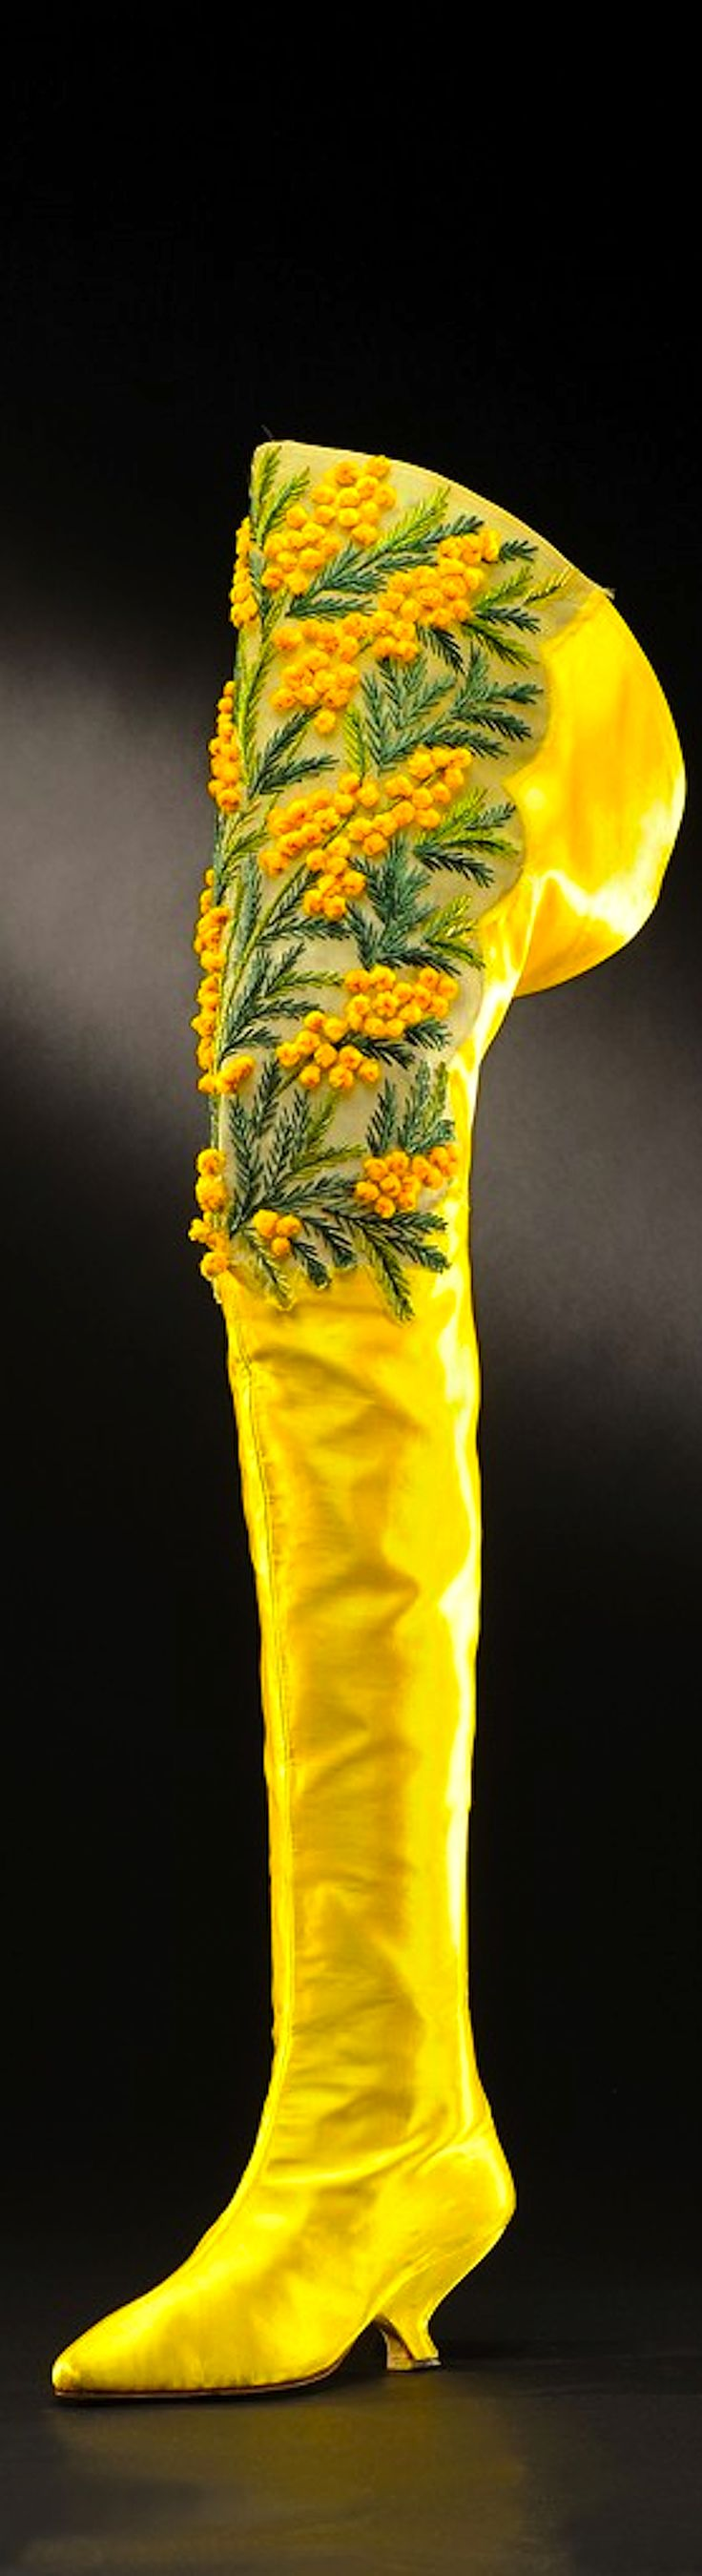 1000  ideas about Yellow Boots on Pinterest   Yellow wellies